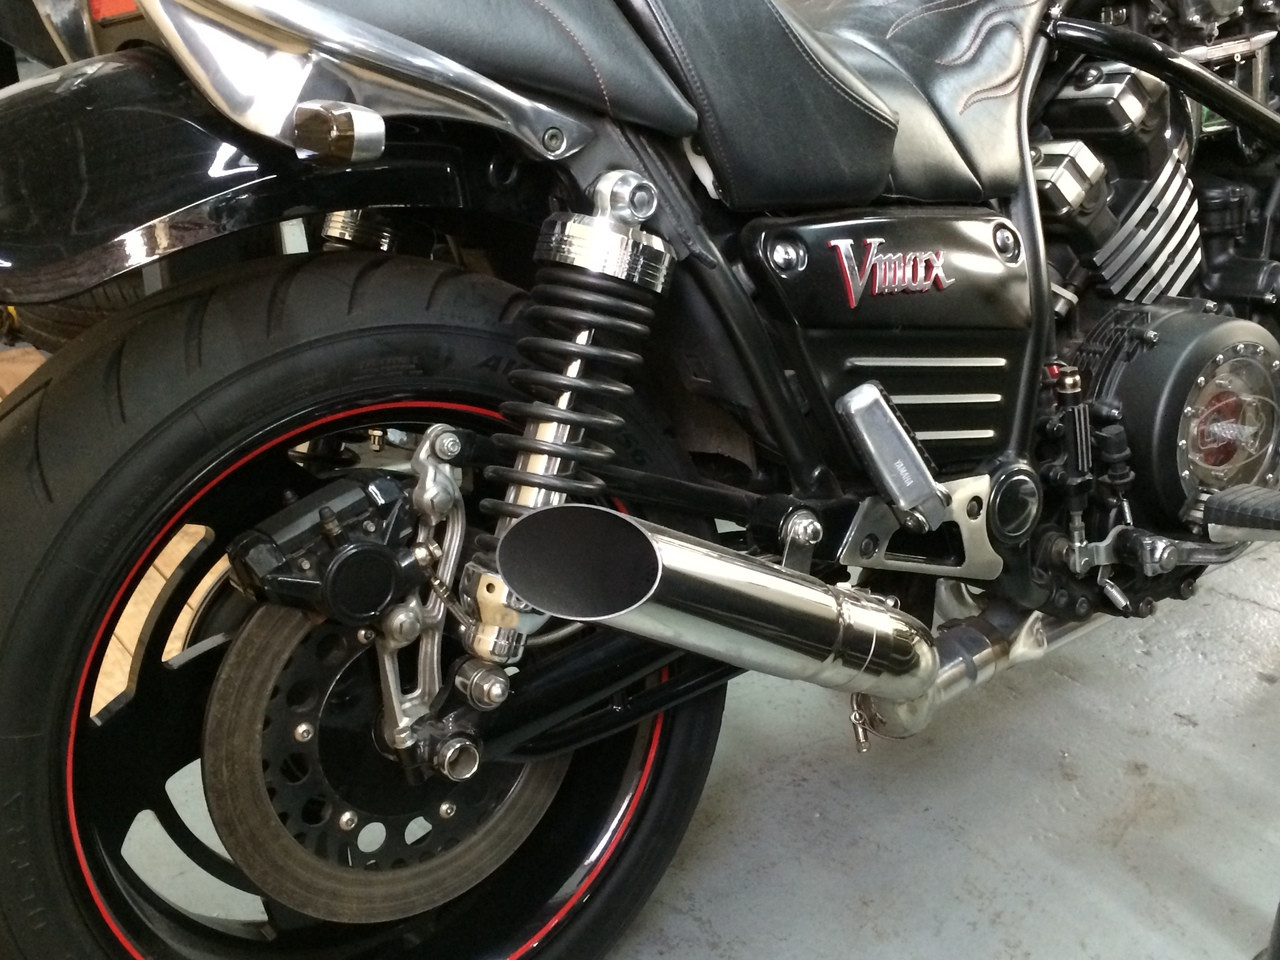 DragStar 4-1 Exhaust w/ Polished 304 Stainless Slash Cut Muffler - Ceramic  Coated (85-07 All)